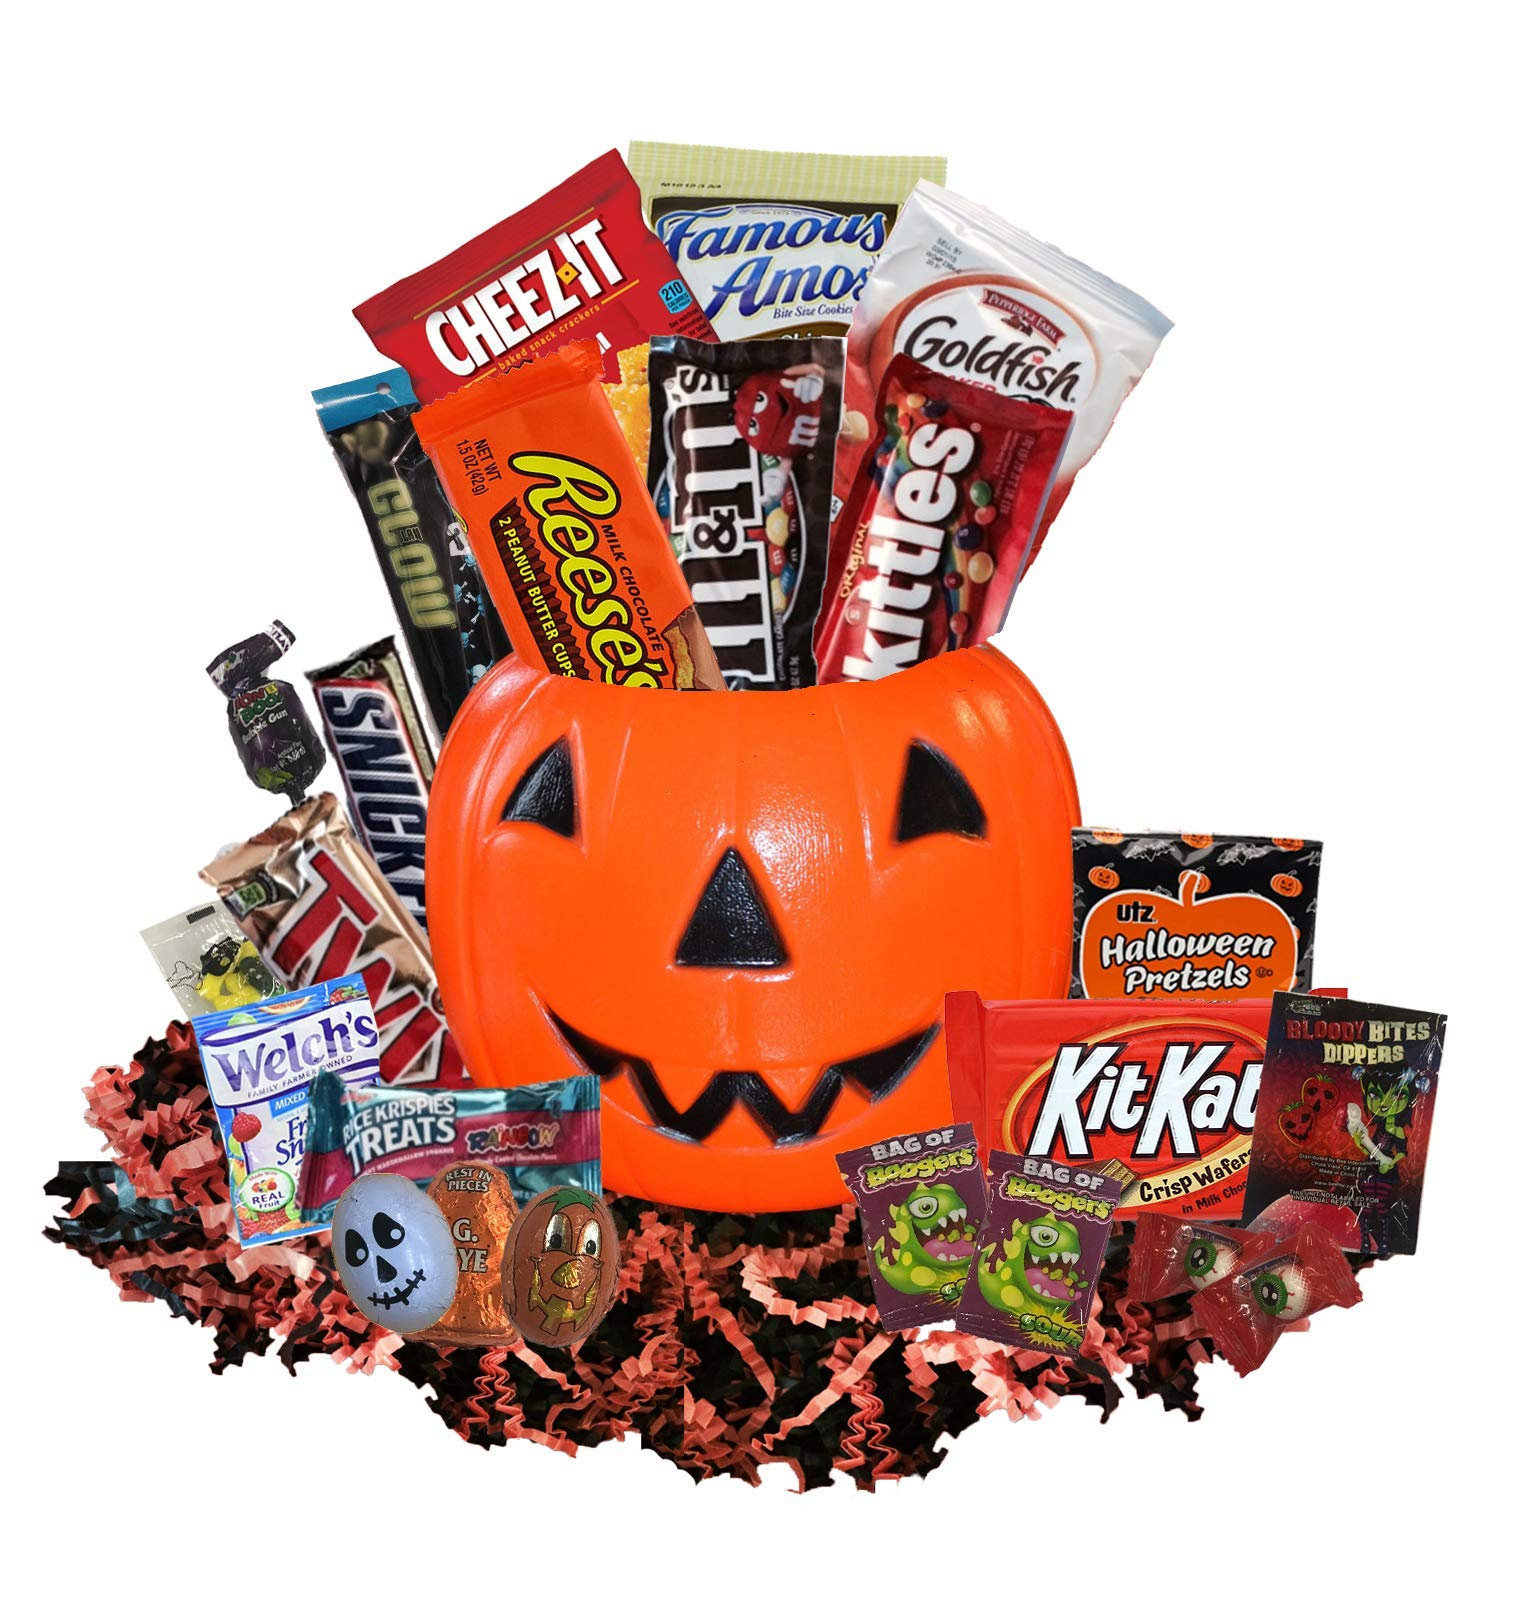 Trick-or-Treat Campus Survival Kit Halloween Care Package by Campus Survival Kits